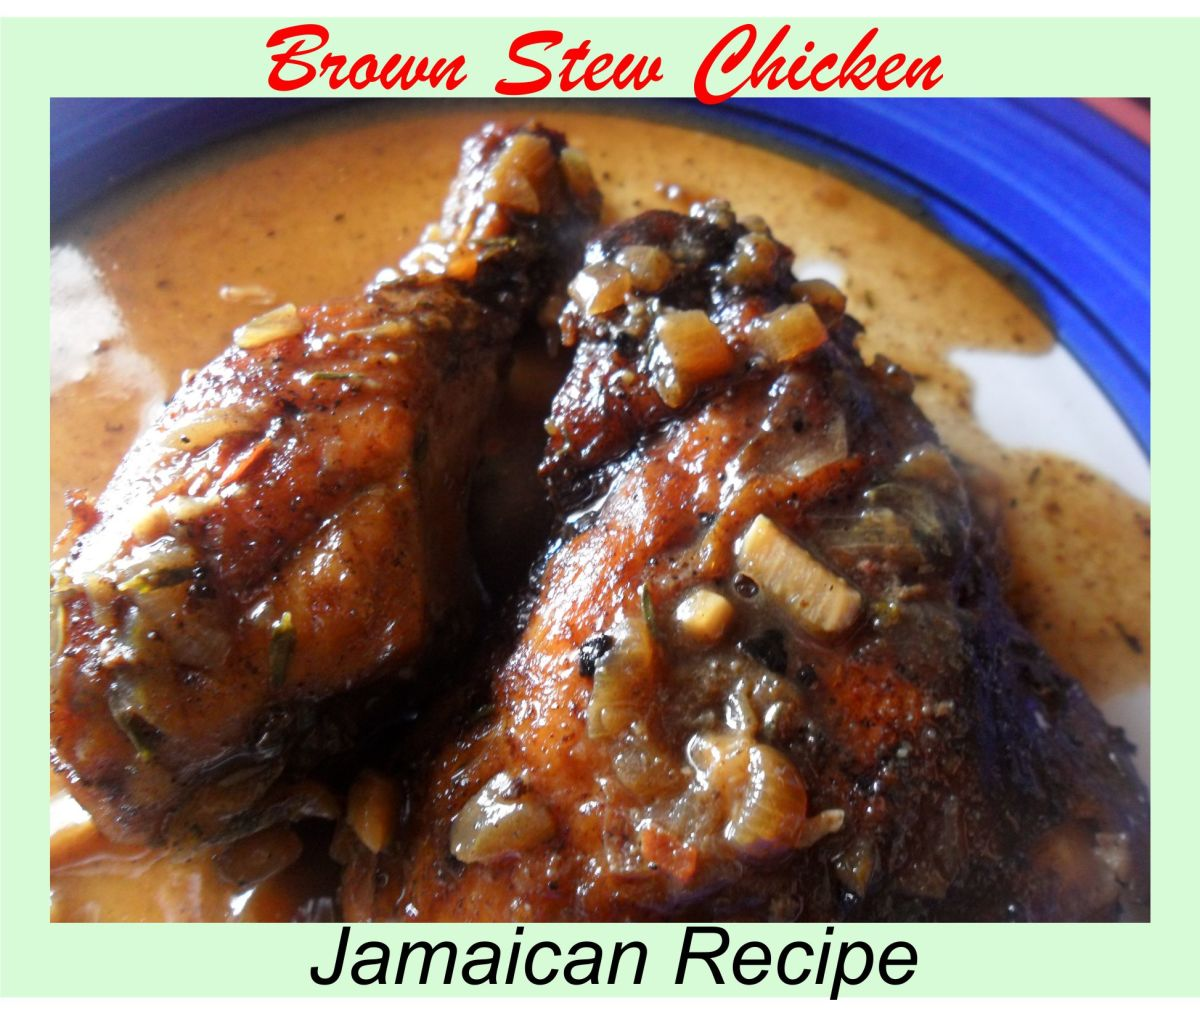 Discover how to make brown stew chicken the Jamaican way.